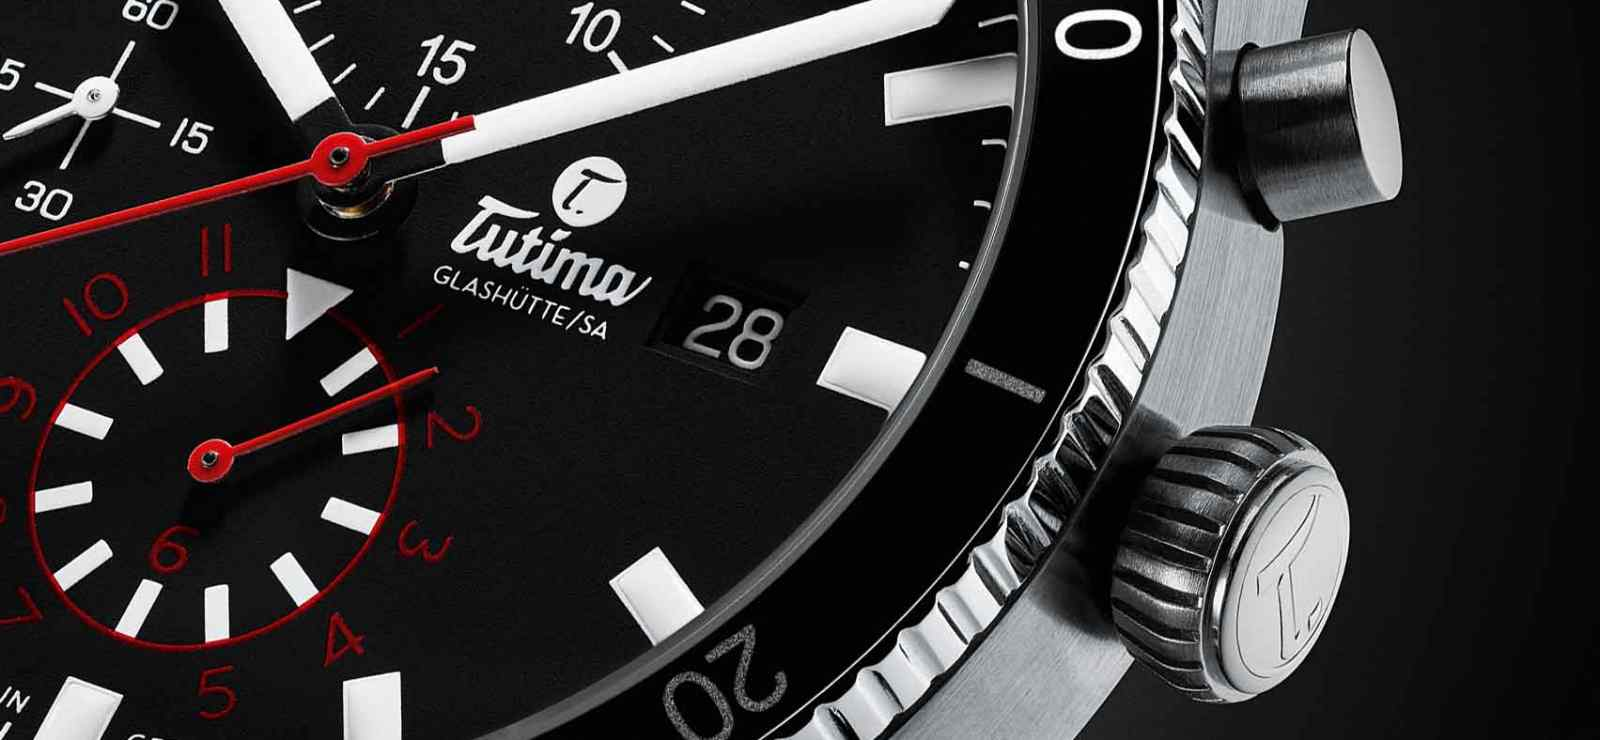 Tutima 6401-01 Dial Close Up